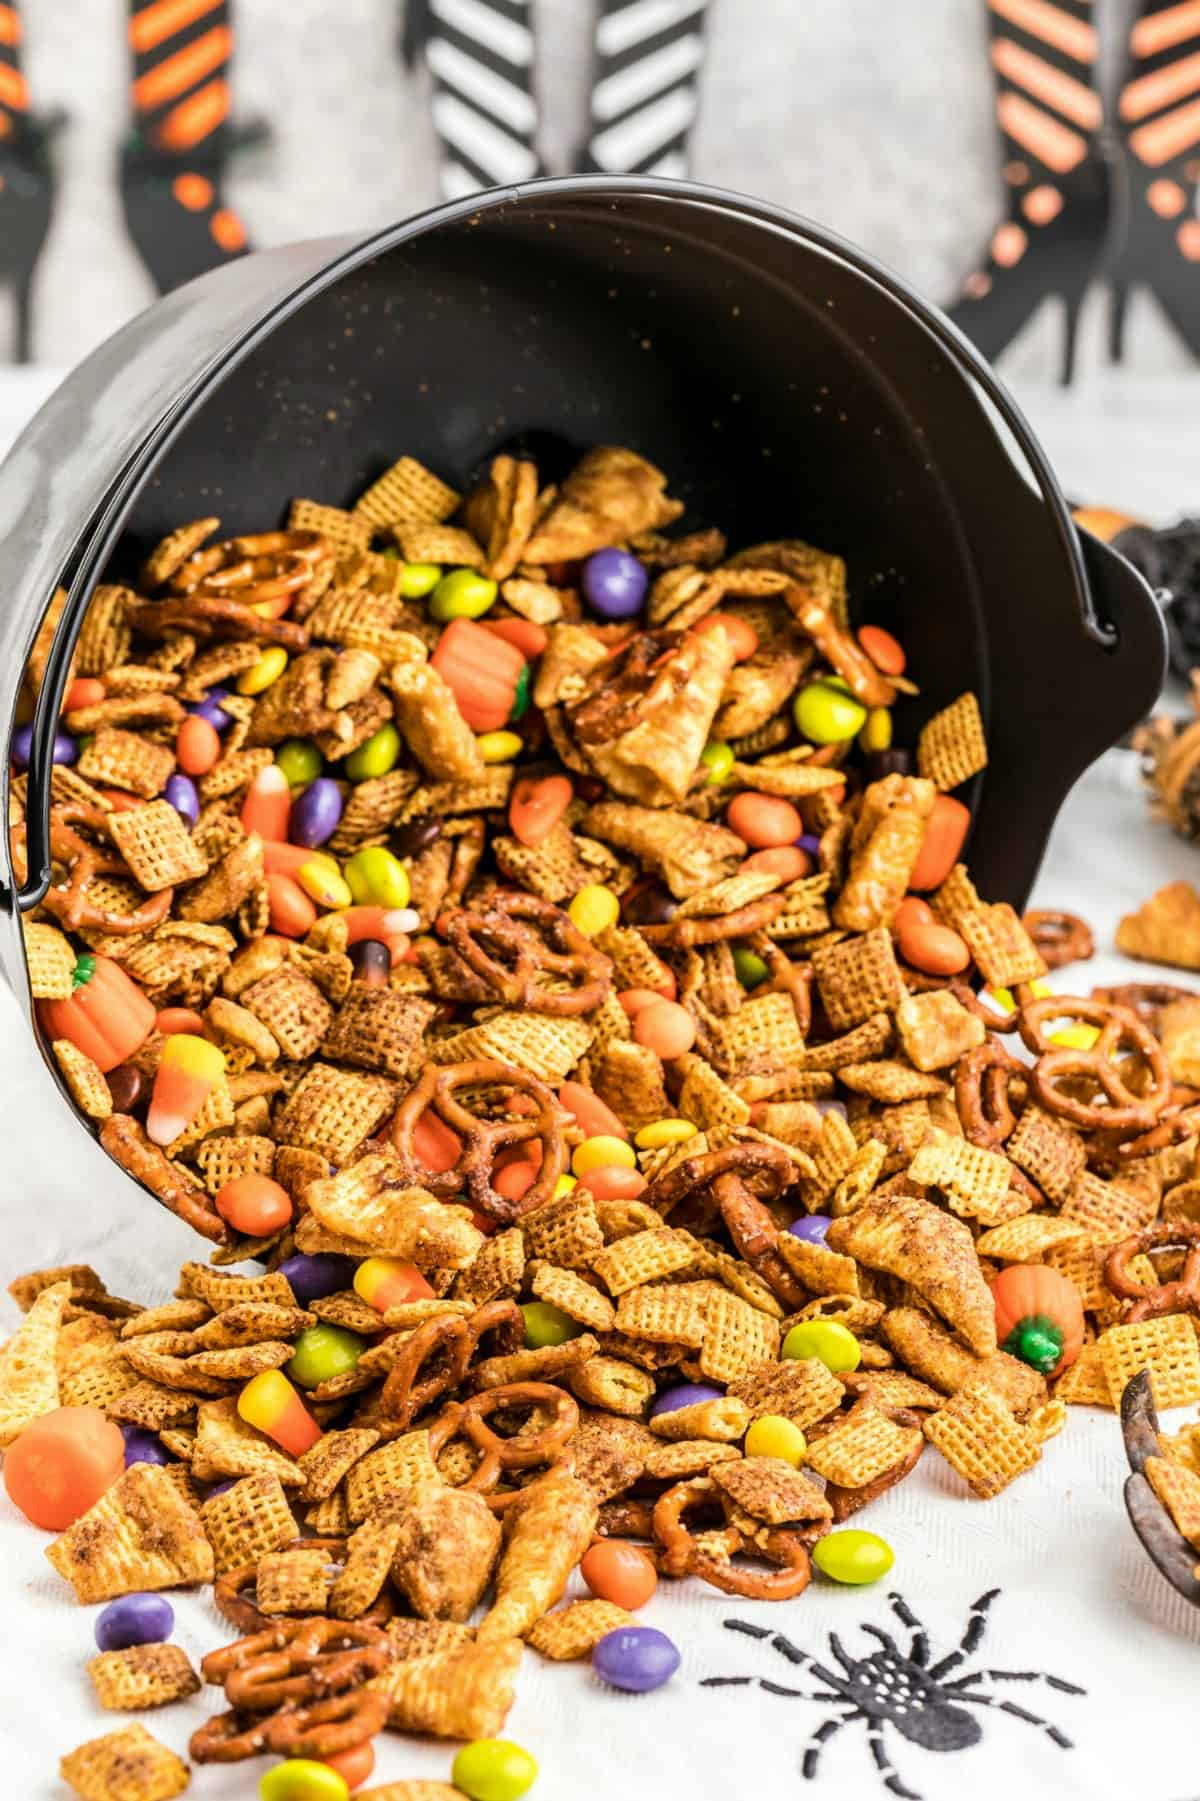 Halloween Chex Mix spilling out of a black cauldron